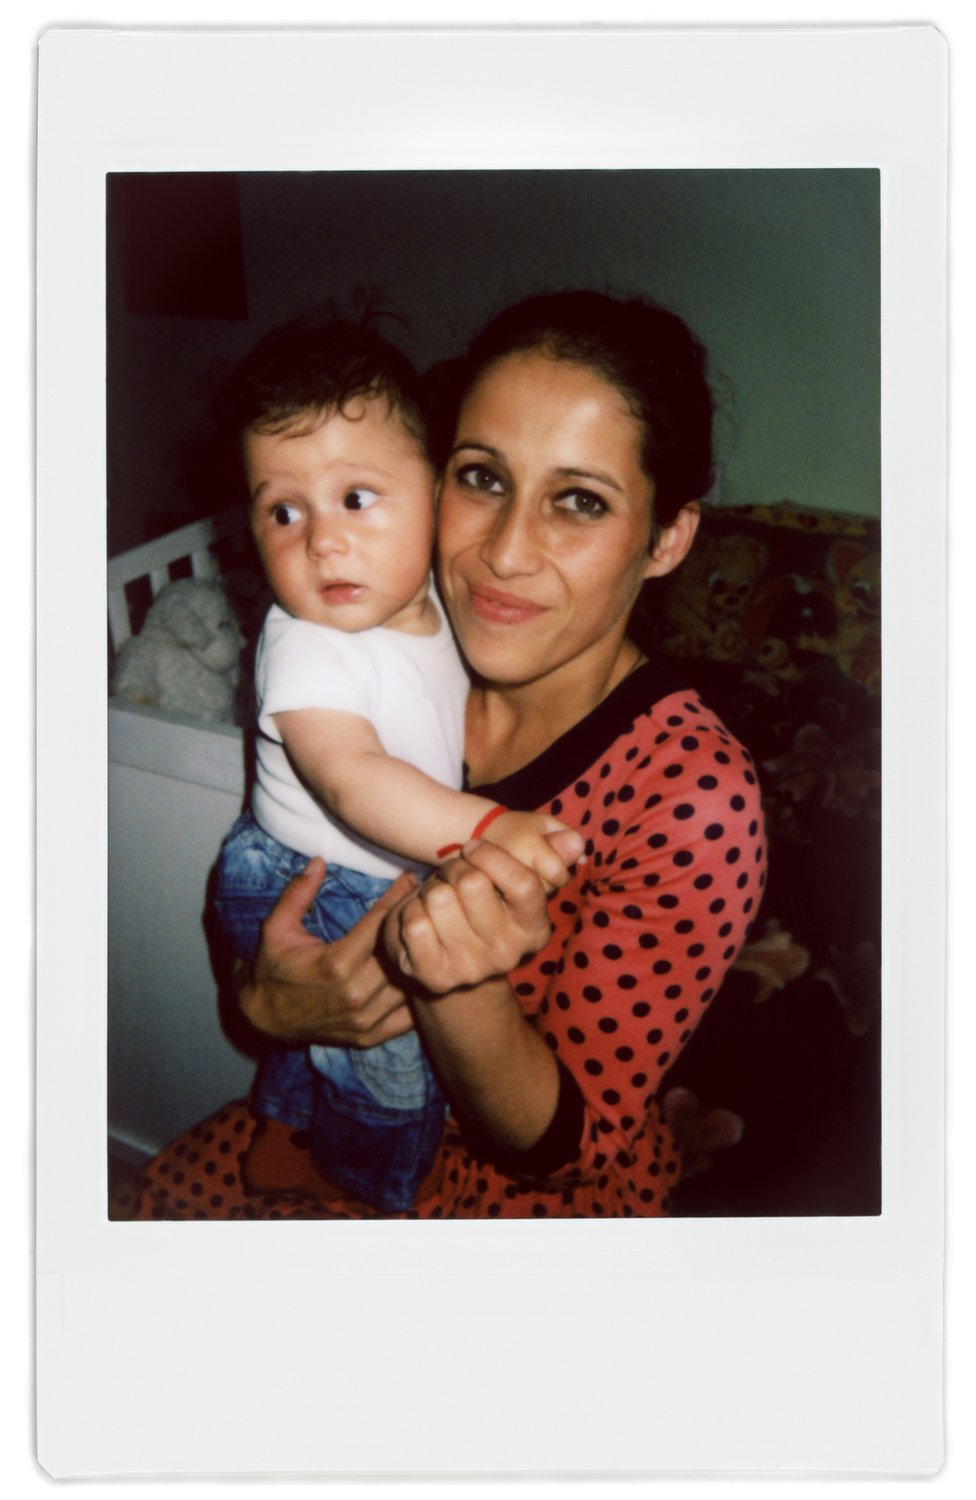 A polaroid photo of Ratha and her baby